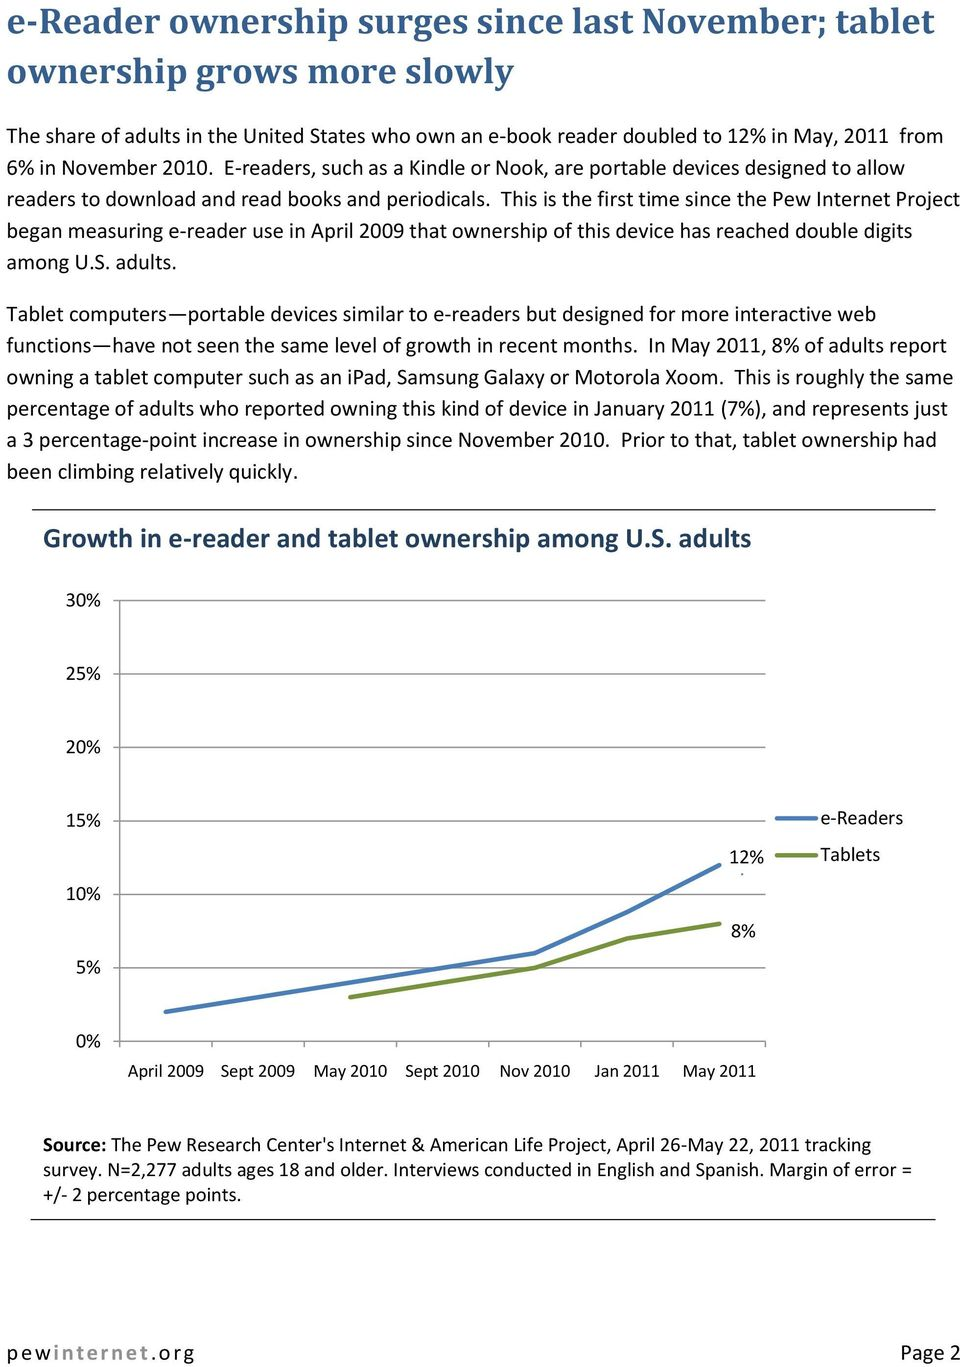 This is the first time since the Pew Internet Project began measuring e-reader use in April 2009 that ownership of this device has reached double digits among U.S. adults.